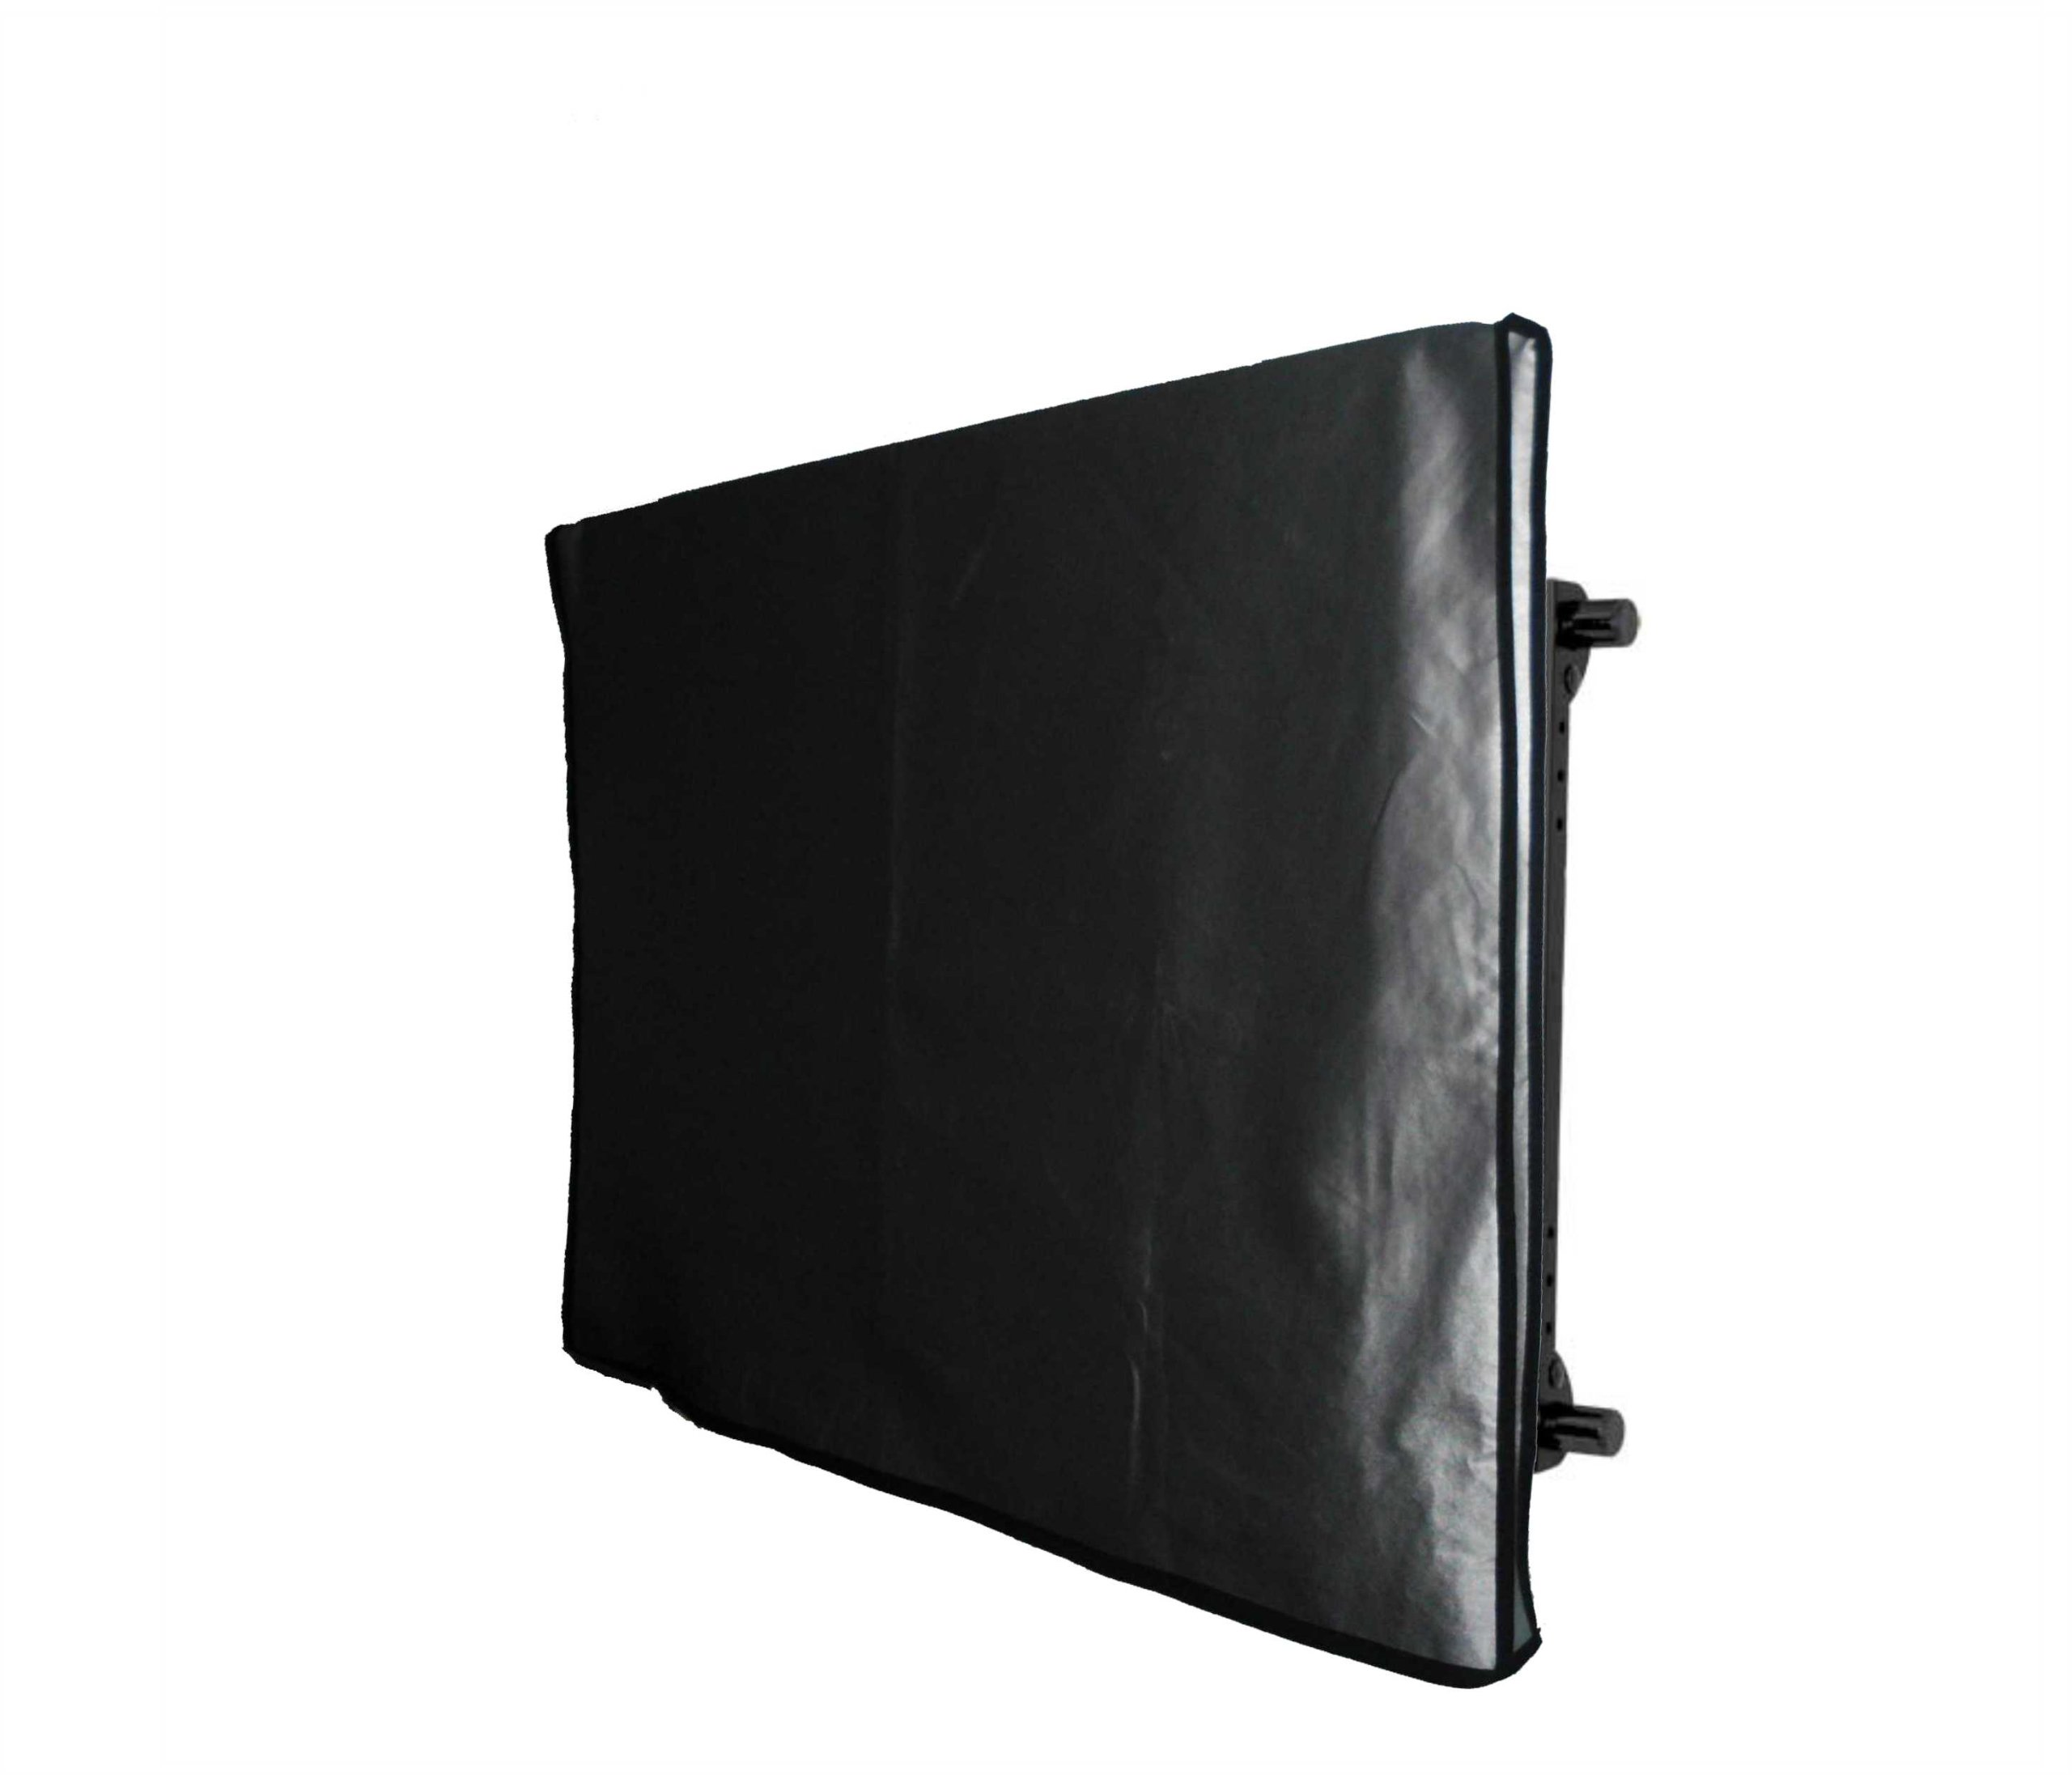 Marine Grade Nylon 32'' TV Dust Cover   (31.75'' wide x 3.75'' deep x 23'' high) Ideal for outdoor locations such as Restaurants, Hotels, Marinas or Poolside Locations. by Viziflex (Image #3)